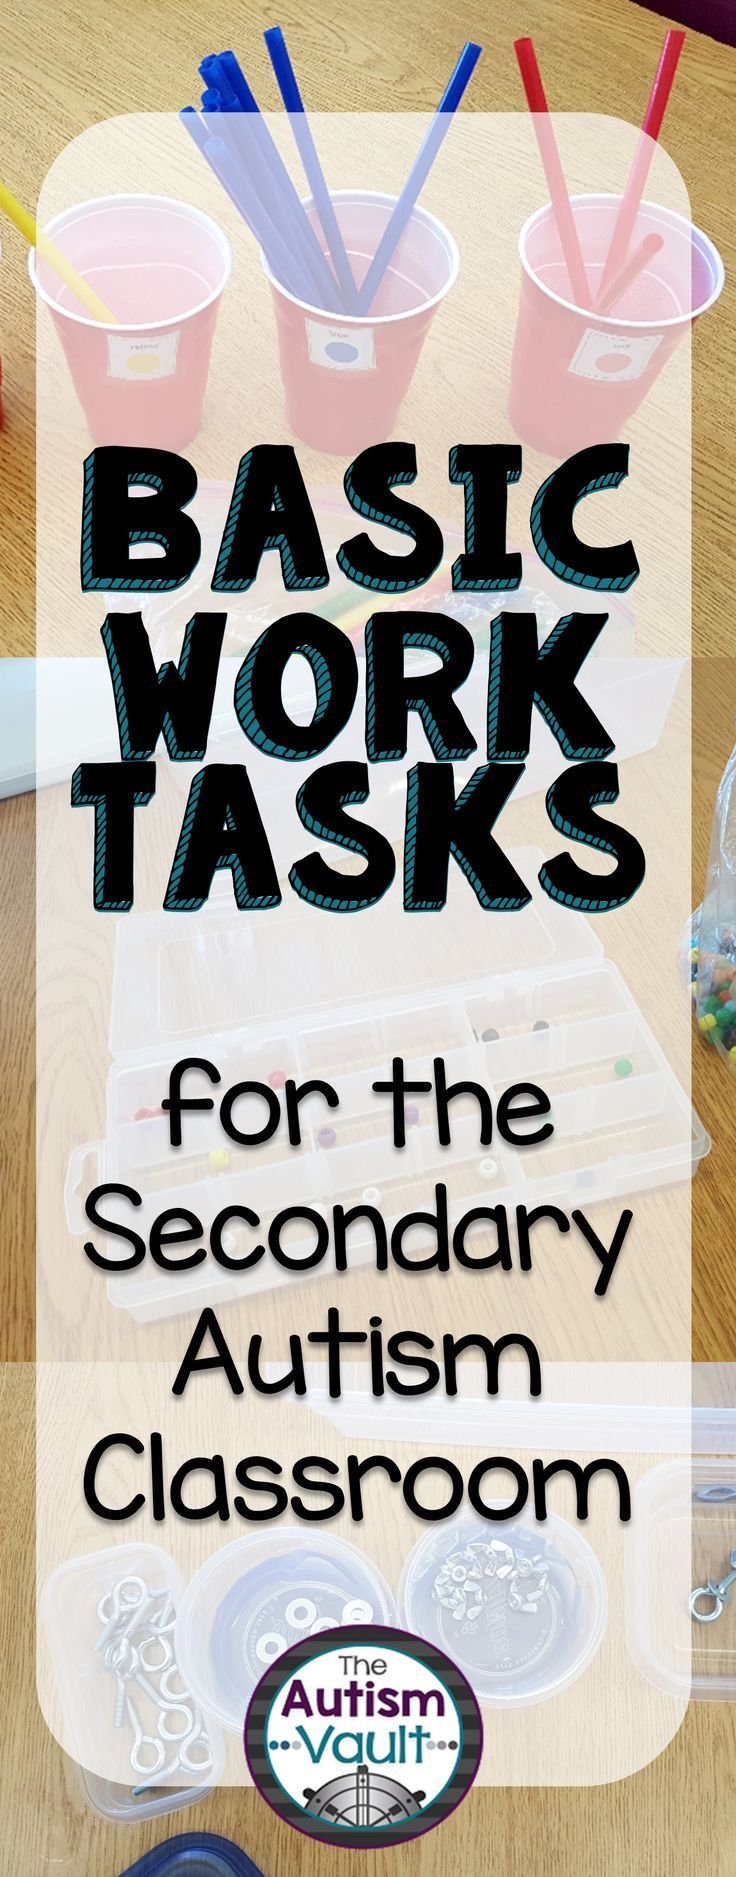 Work tasks are a great way to give our students with autism hands-on learning opportunities for very little or no money. This is especially important for our secondary learners, being that many of these skills can transfer to a work site or job environmen